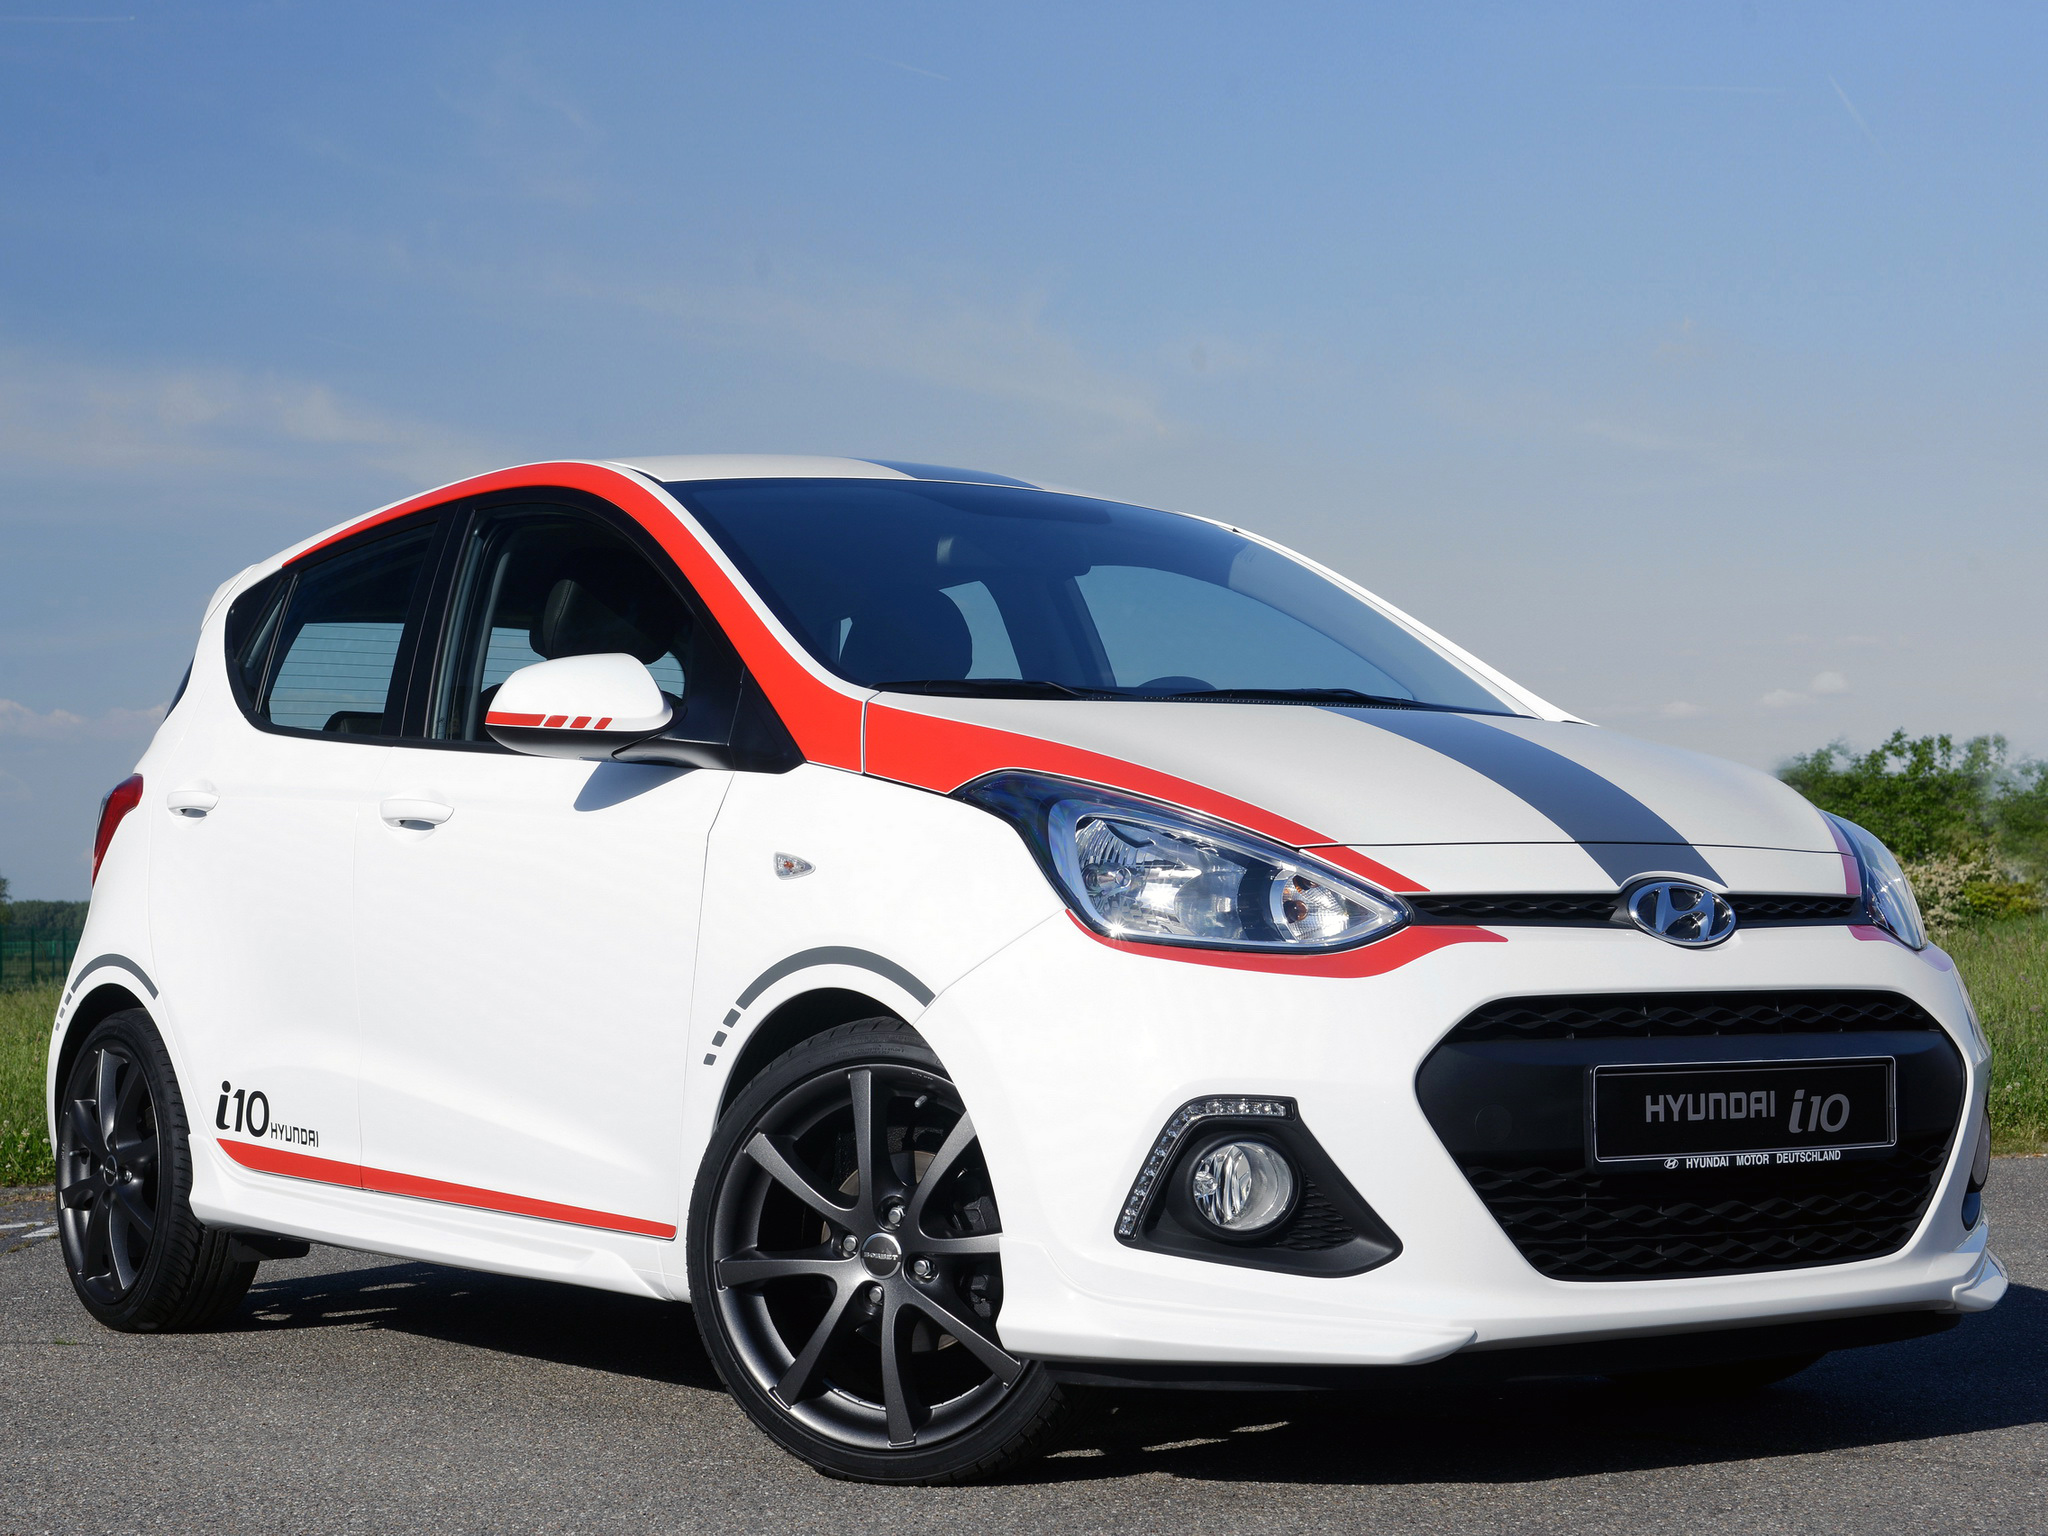 new hyundai i10 sport model launched in germany. Black Bedroom Furniture Sets. Home Design Ideas